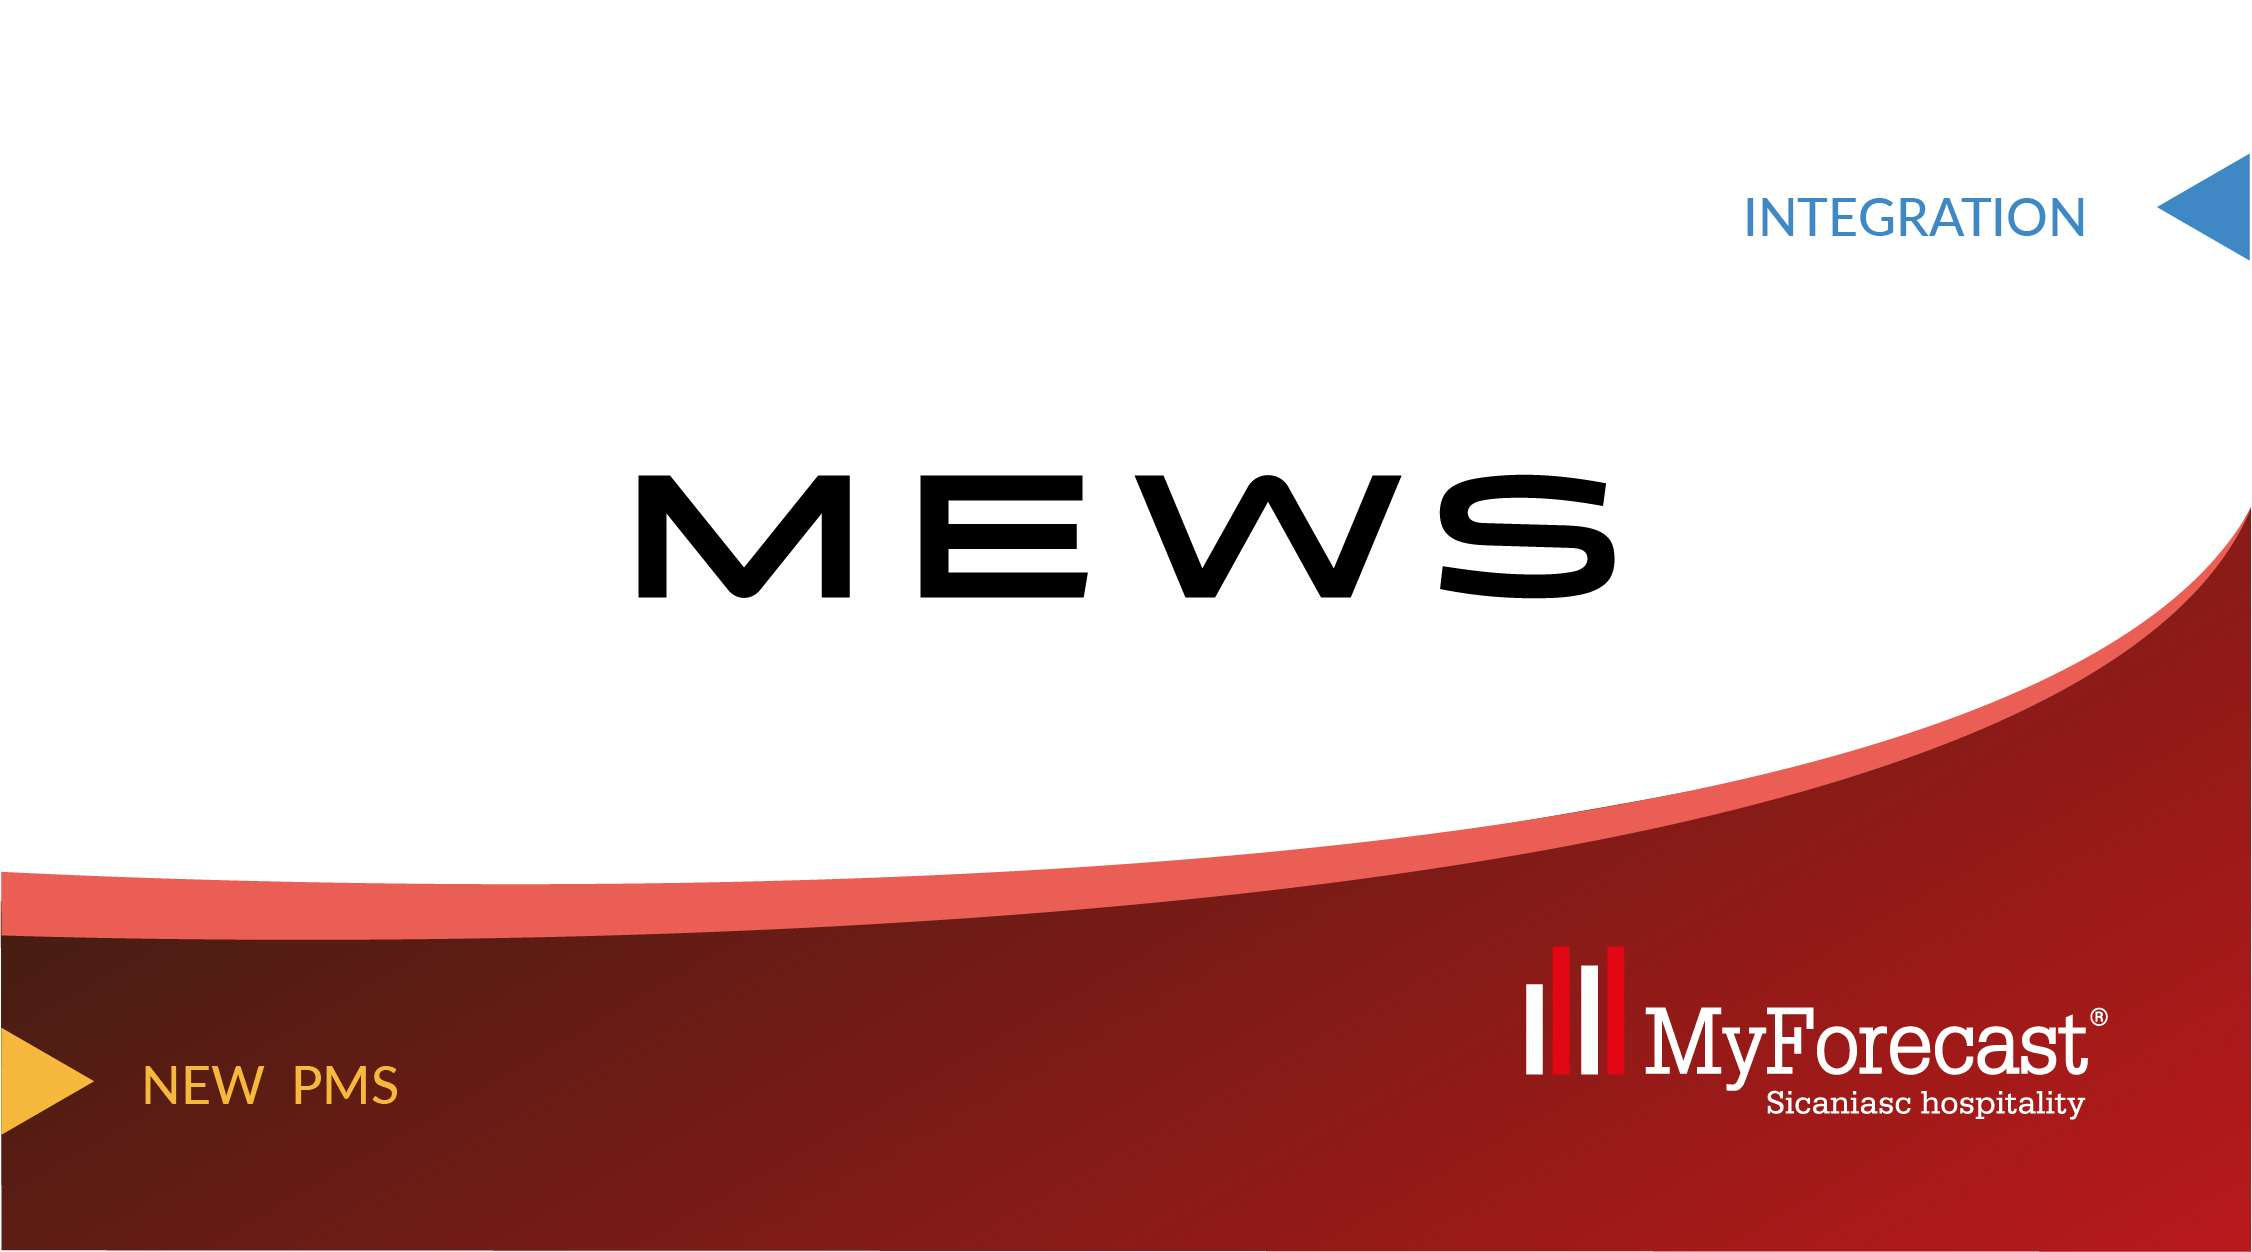 MyForecast obtains the Mews certification. The partnership between the Hotel Revenue Software and the Hotel Management has started.